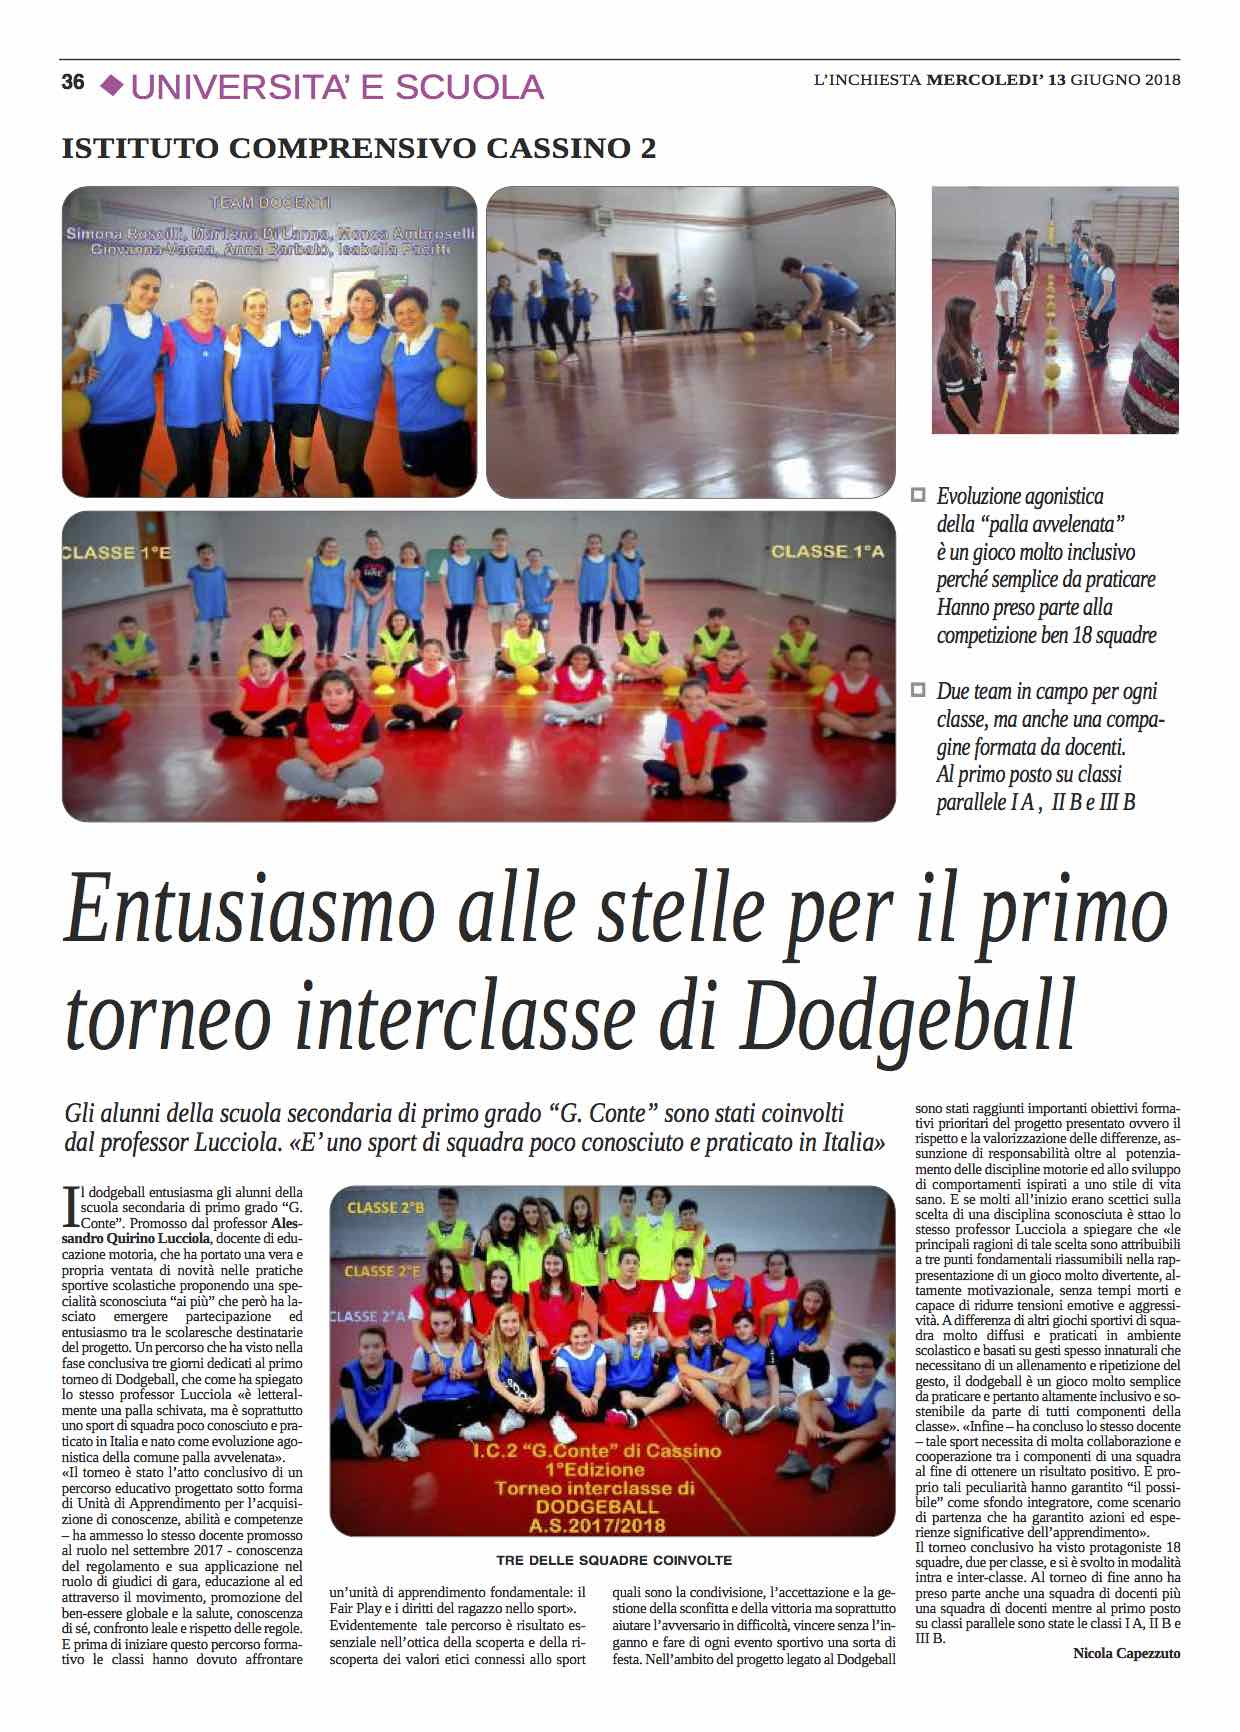 Torneo_interclasse_dodgeball_2018.jpg